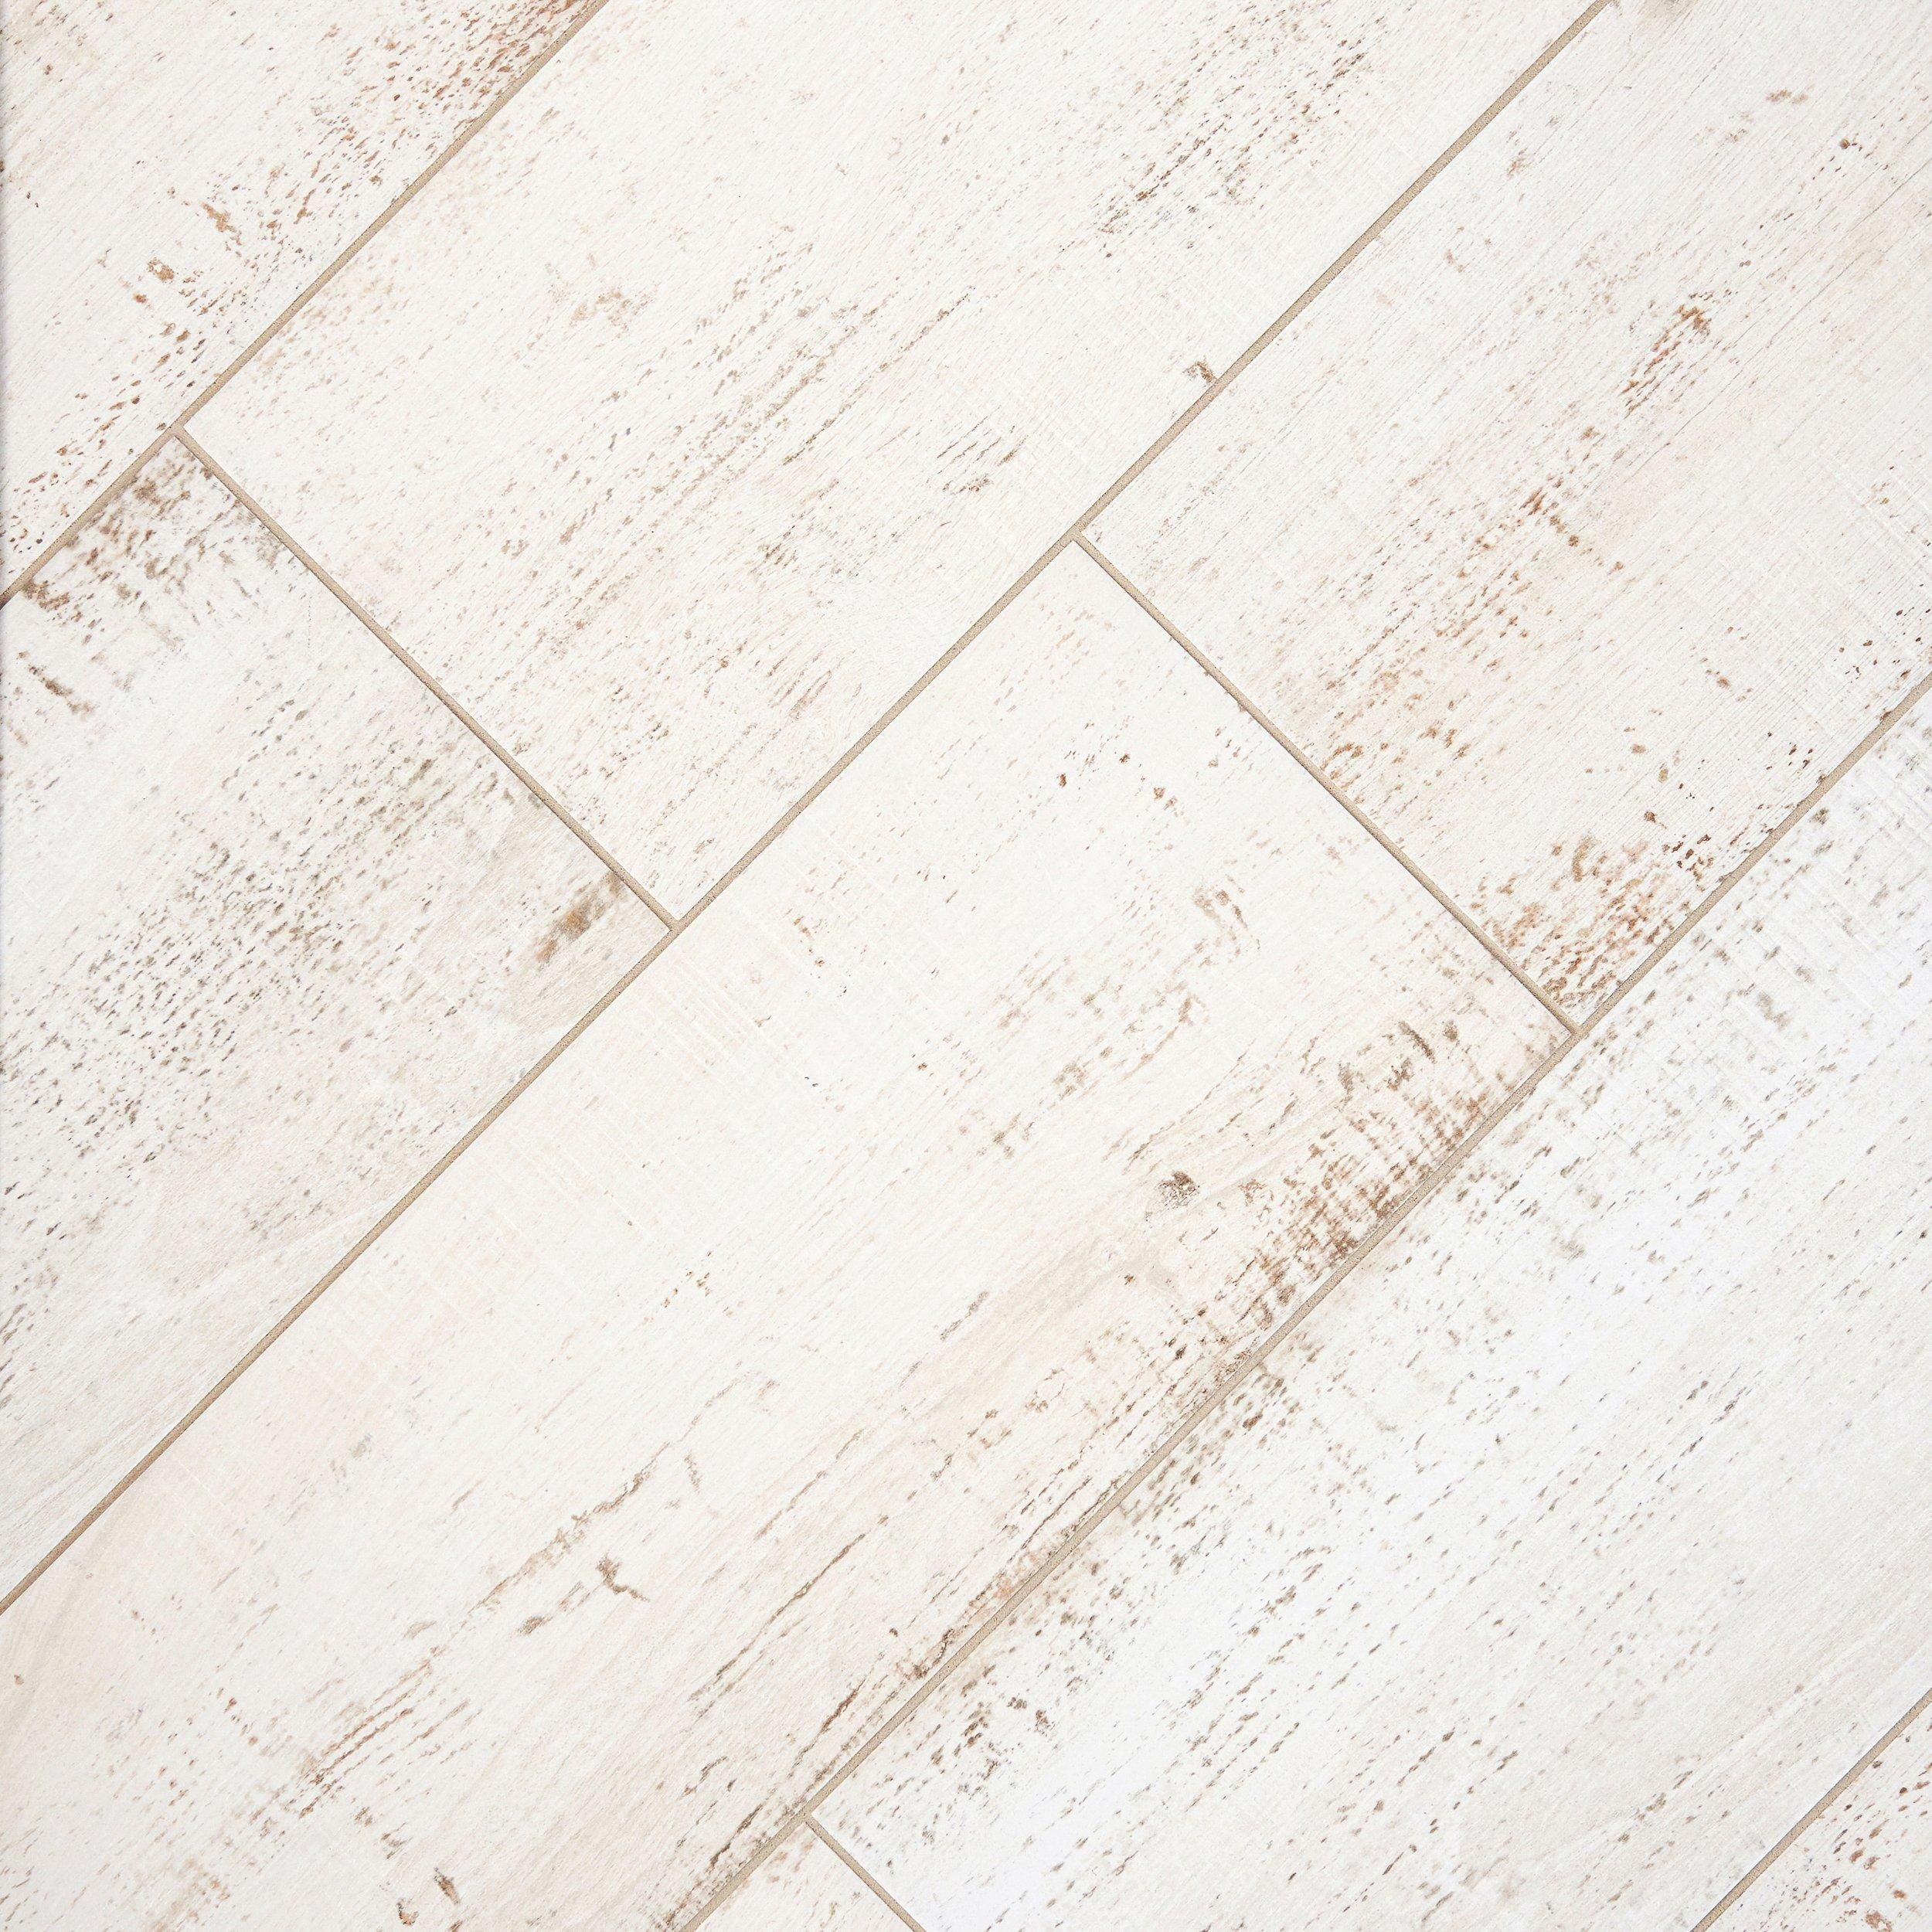 Windsor White Wood Plank Porcelain Tile Wood Tile Bathroom Wood Tile Bathroom Floor White Wood Floors